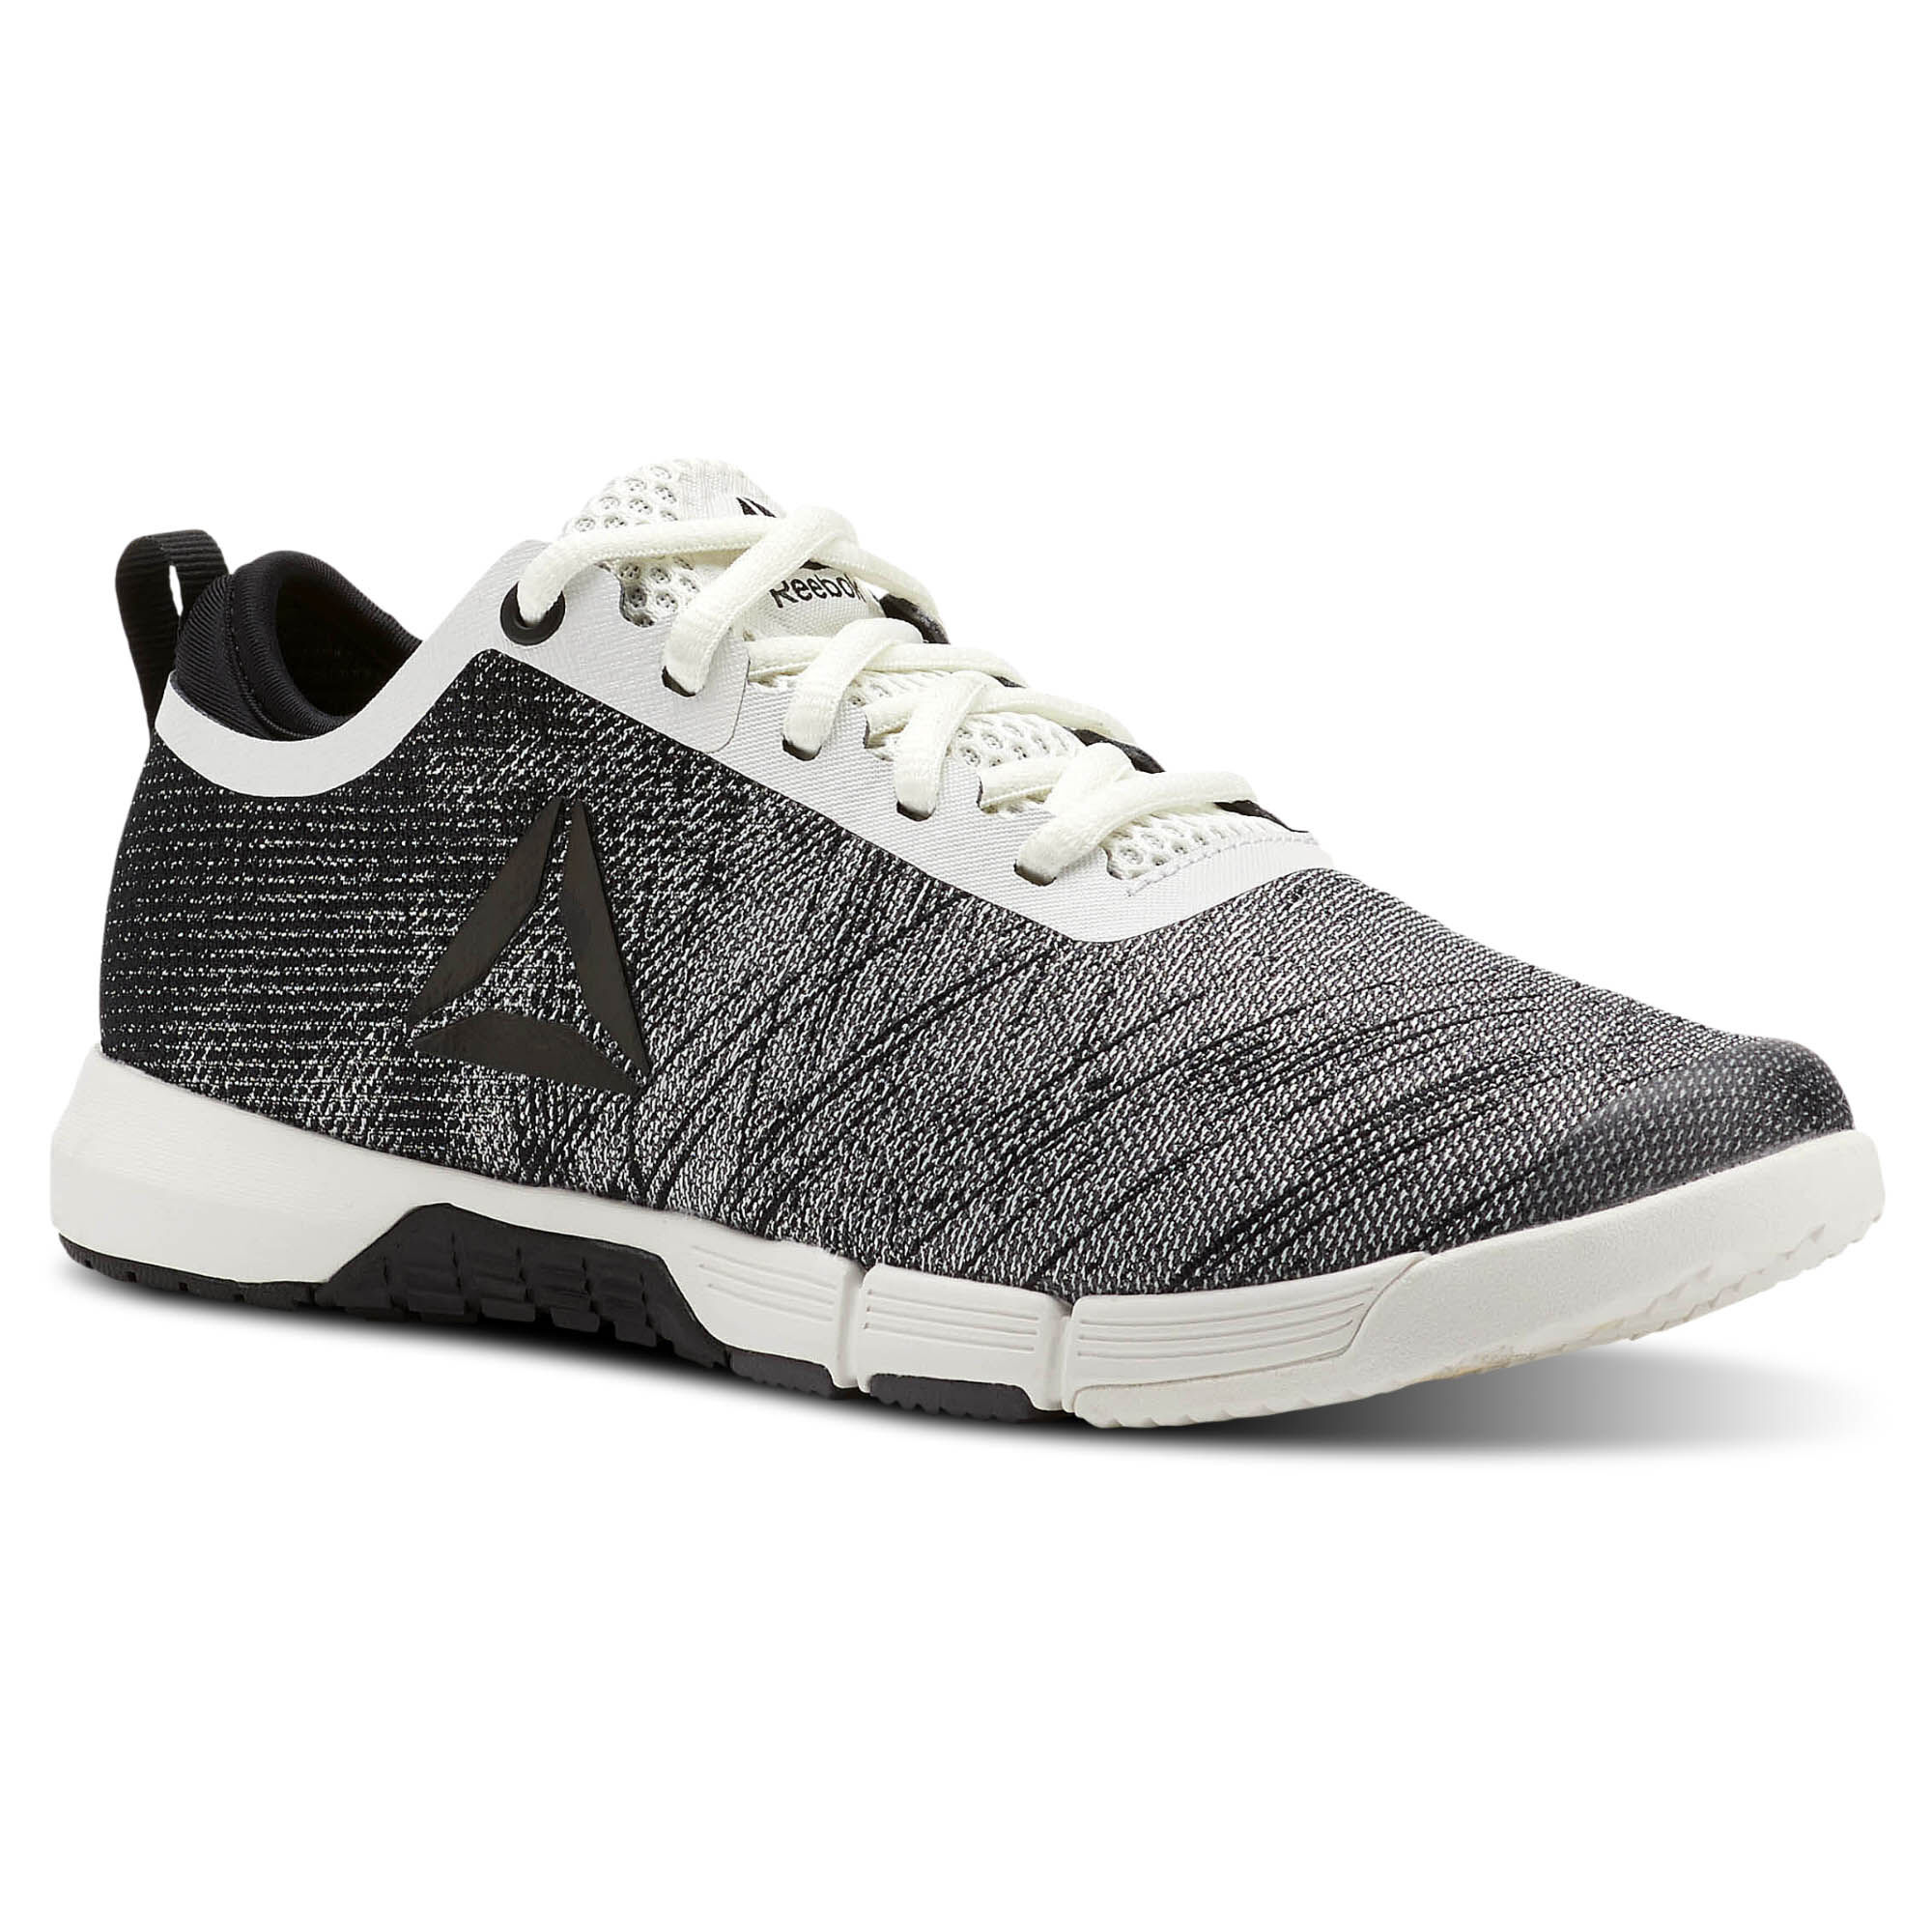 Reebok SPEED HER TR - Sports shoes - chalk/black/ash grey YeT9i9Vt